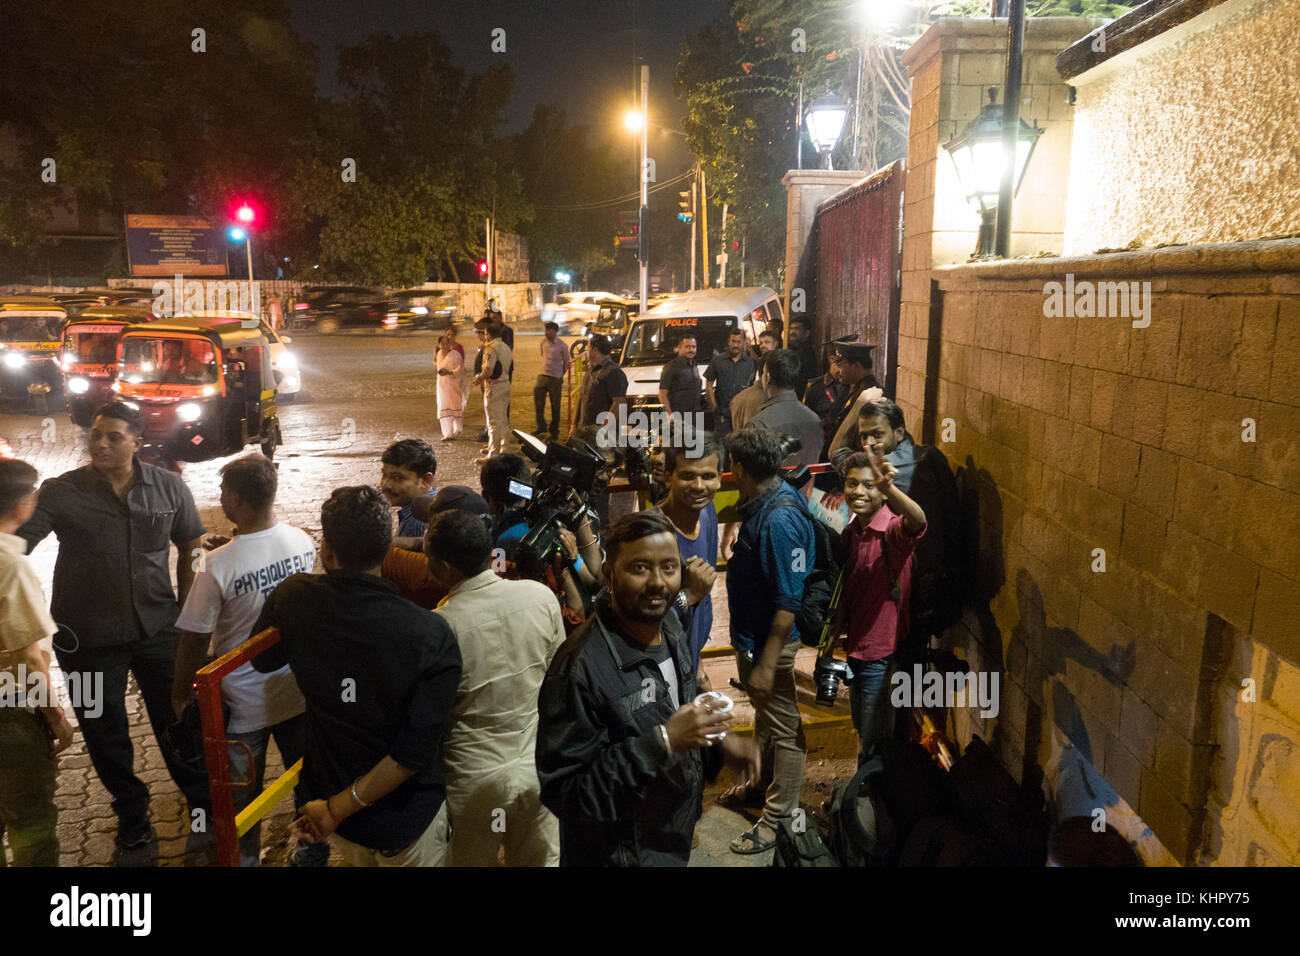 Paparazzi photographers outside home of Bollywood film star Amitabh Bachchan in Mumbai, India - Stock Image